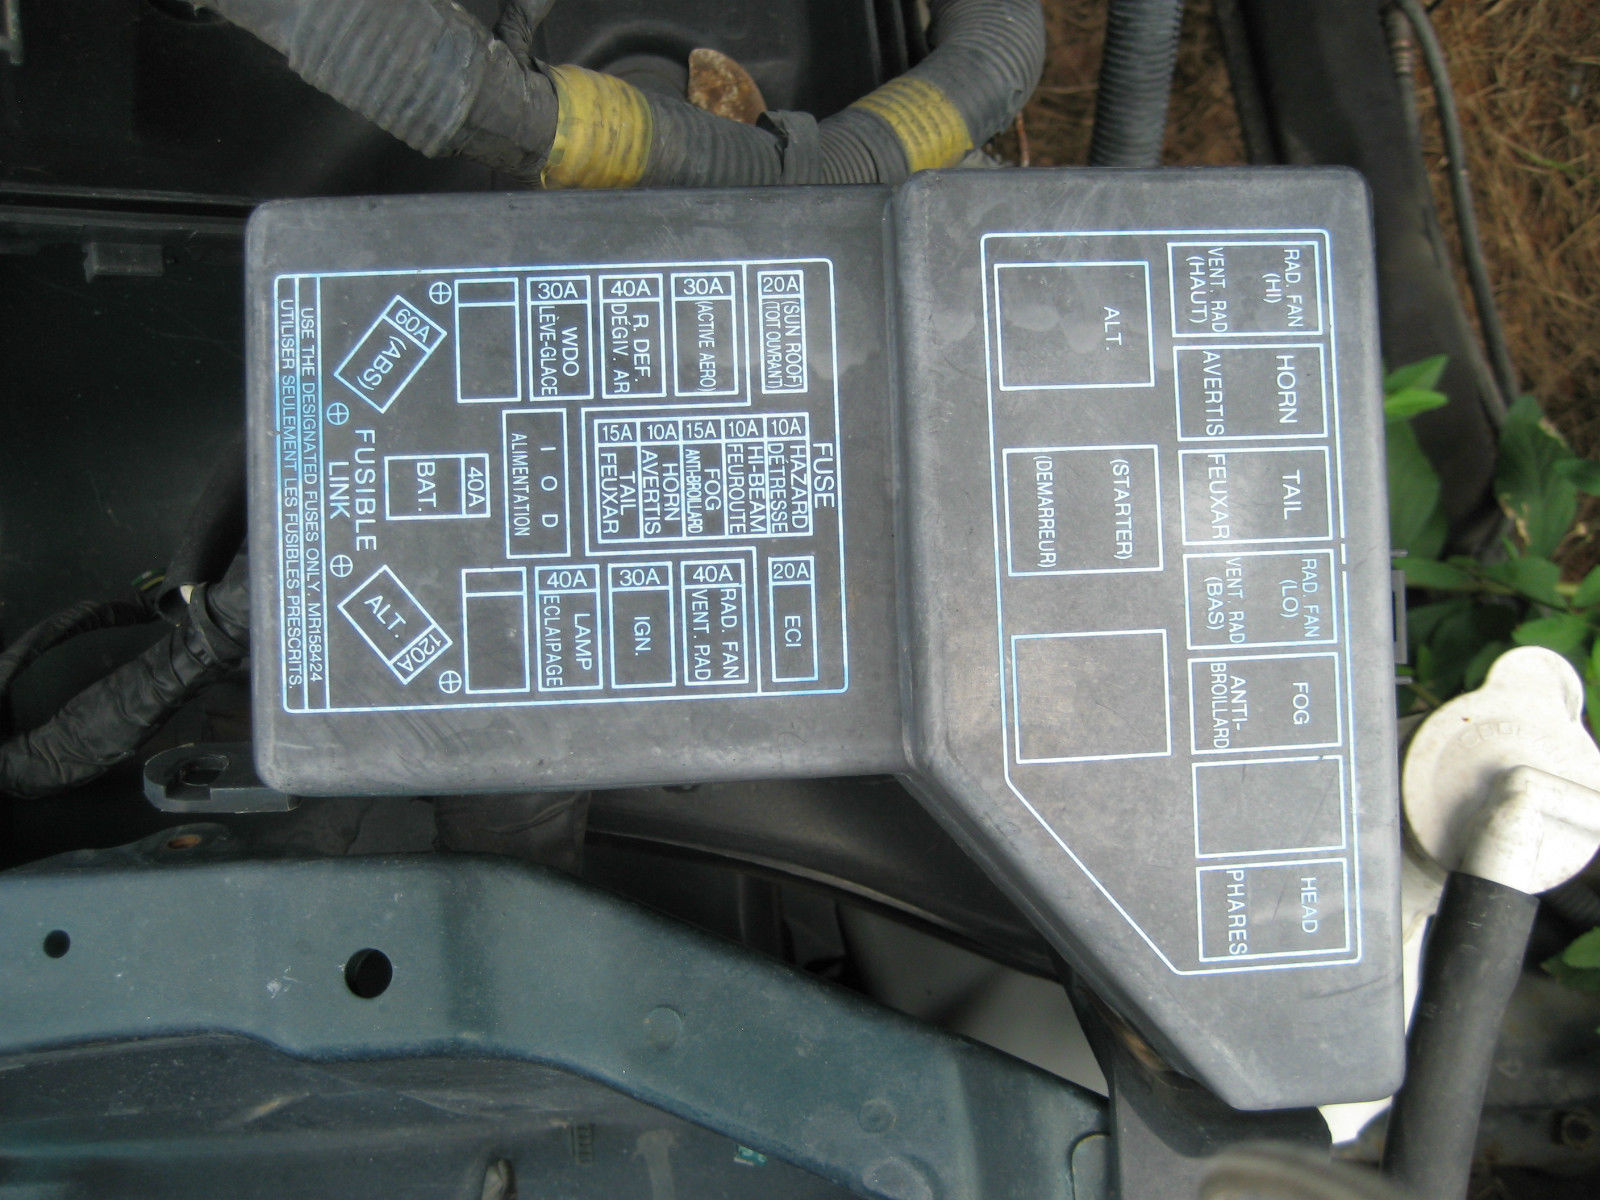 1995 3000gt fuse box cover technical diagrams dodge charger fuse box 1995 3000gt fuse box cover #13